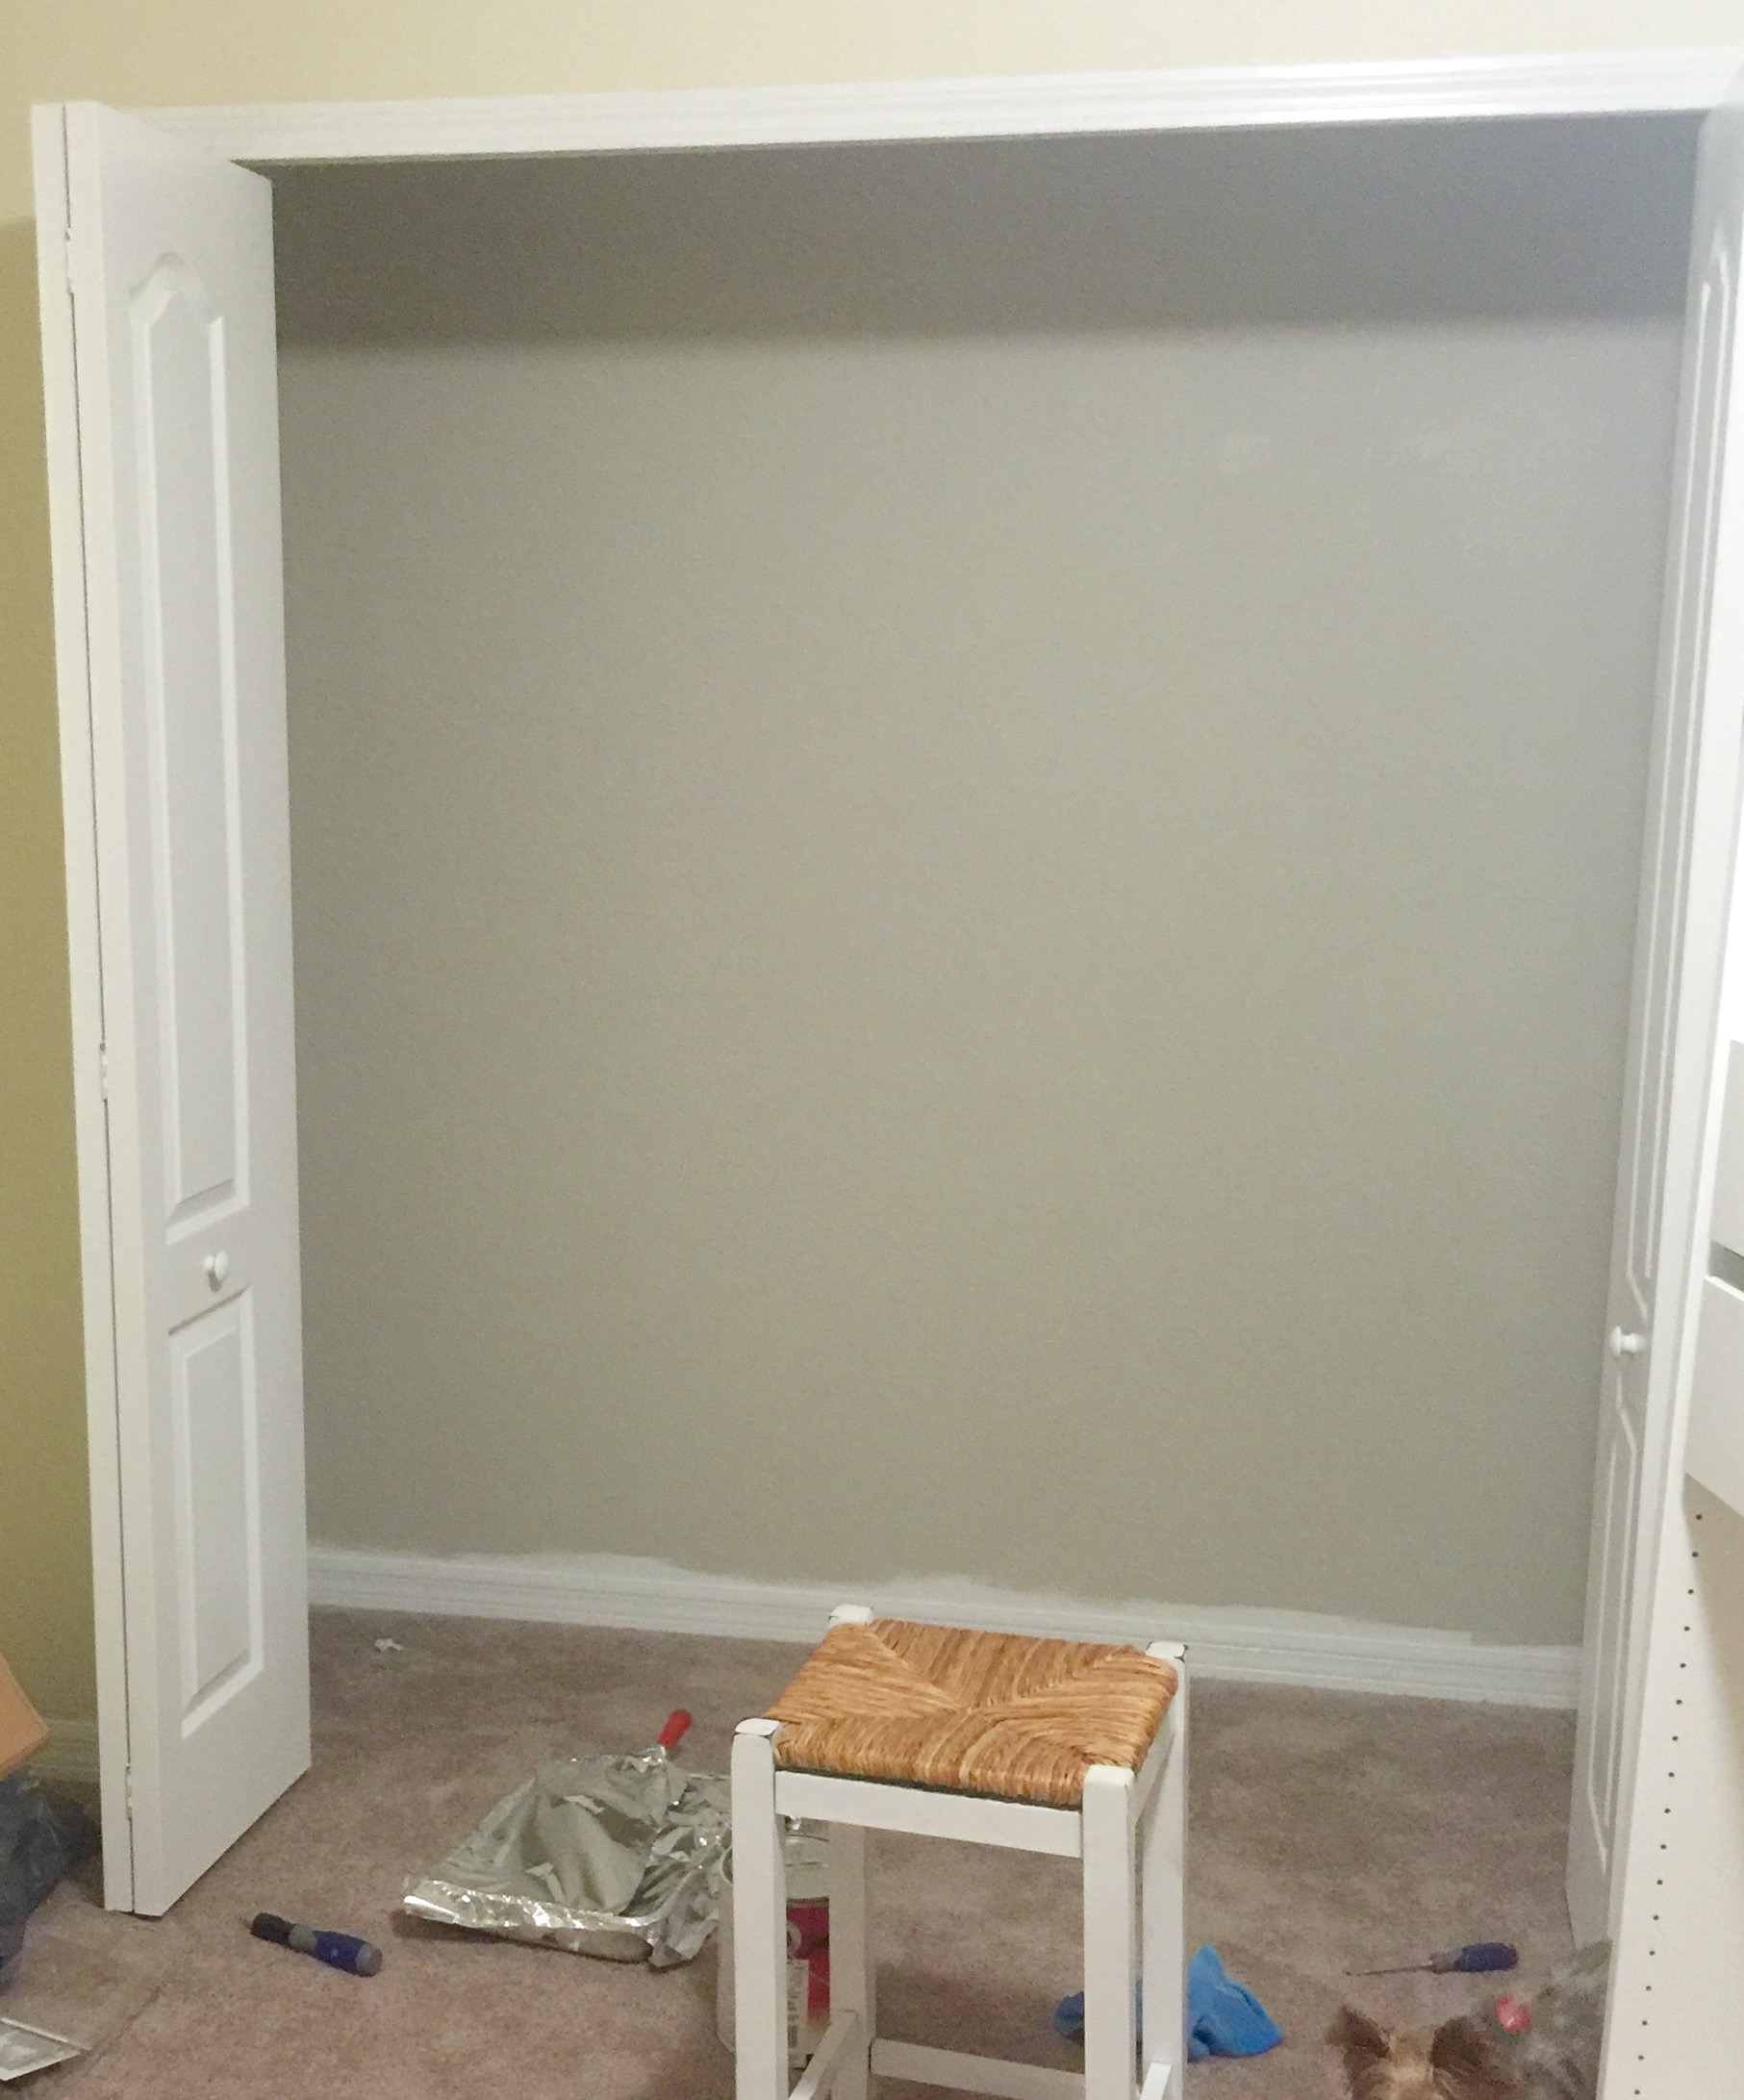 ... The Inside Of The Closet. (But Mostly Because I Wanted To Test This  Paint Color Out On A Larger Space Before Committing To Painting The Entire  Nursery.